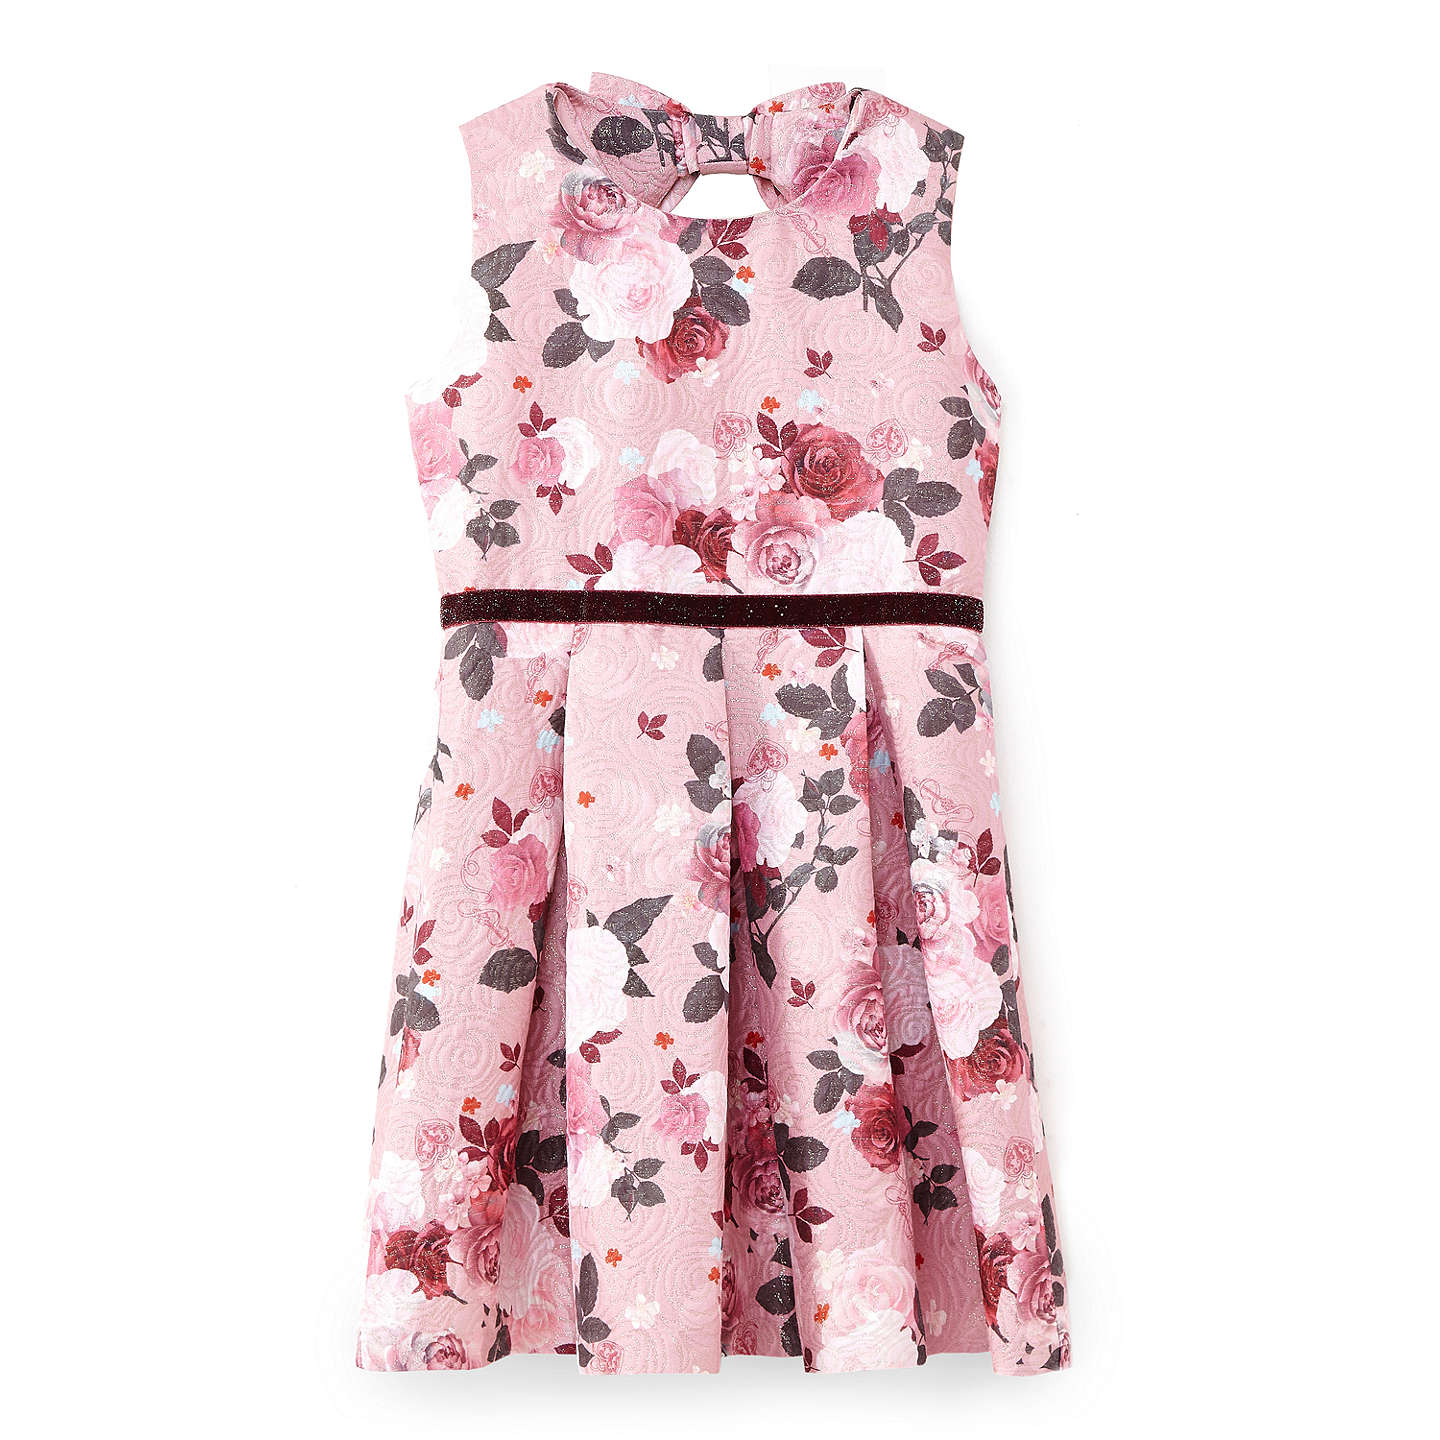 BuyYumi Girl Lock and Key Jacquard Dress, Dusty Pink, 7 - 8 years Online at johnlewis.com